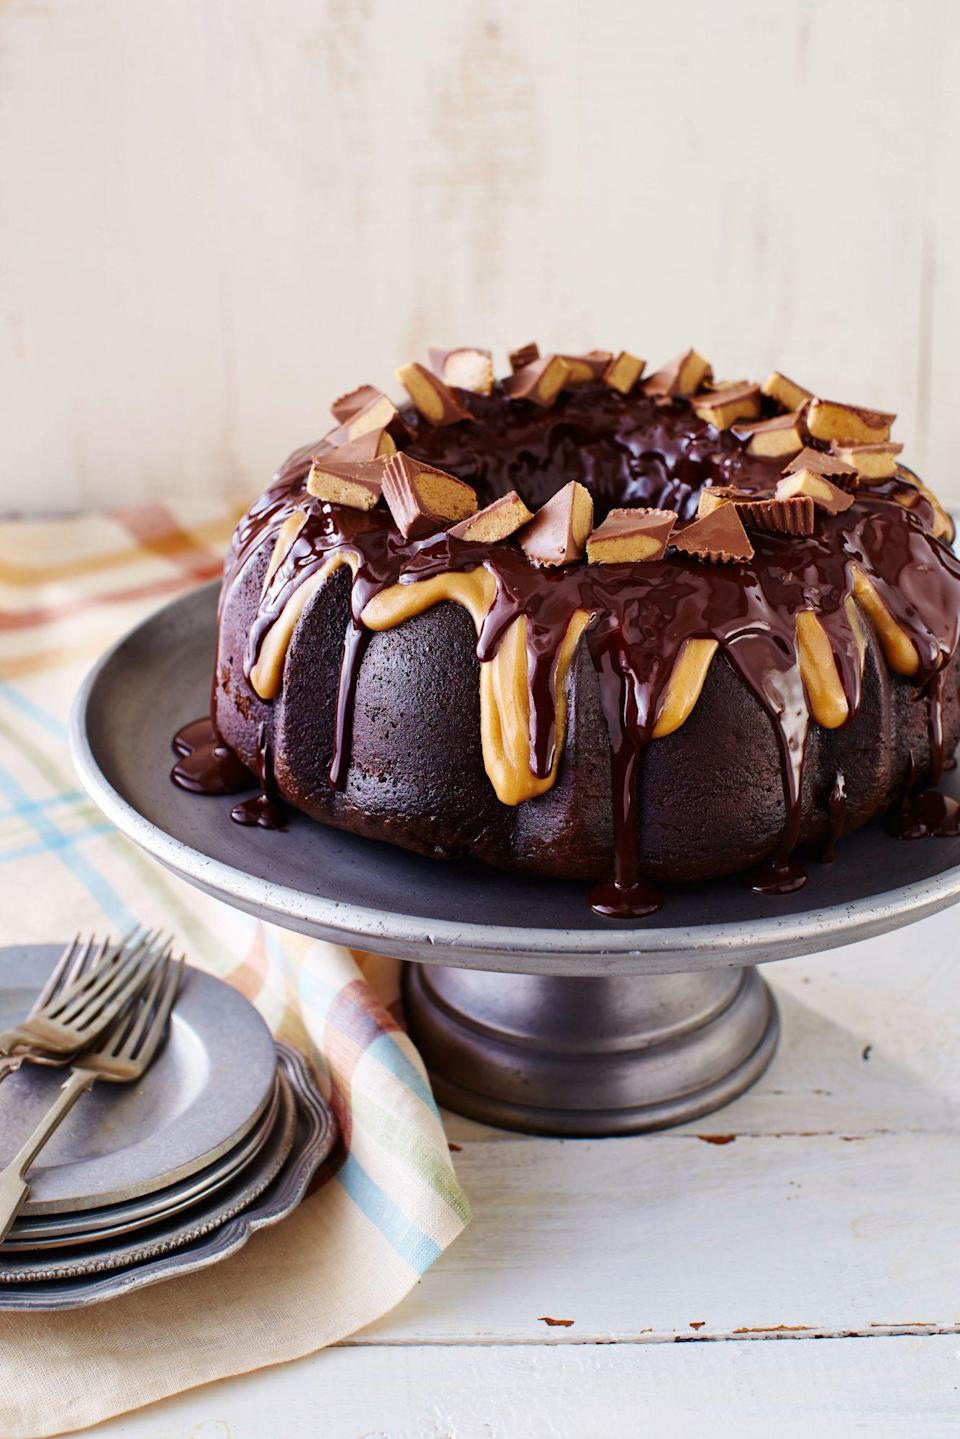 """<p><strong>Recipe: <a href=""""https://www.southernliving.com/recipes/reeses-cake"""" rel=""""nofollow noopener"""" target=""""_blank"""" data-ylk=""""slk:Reese's Cake"""" class=""""link rapid-noclick-resp"""">Reese's Cake</a></strong></p> <p>Leftover Halloween candy? Make this totally decadent cake its new home. This divine cake starts with boxed mix, so even the littlest helpers in your house can get in on the baking fun.</p>"""